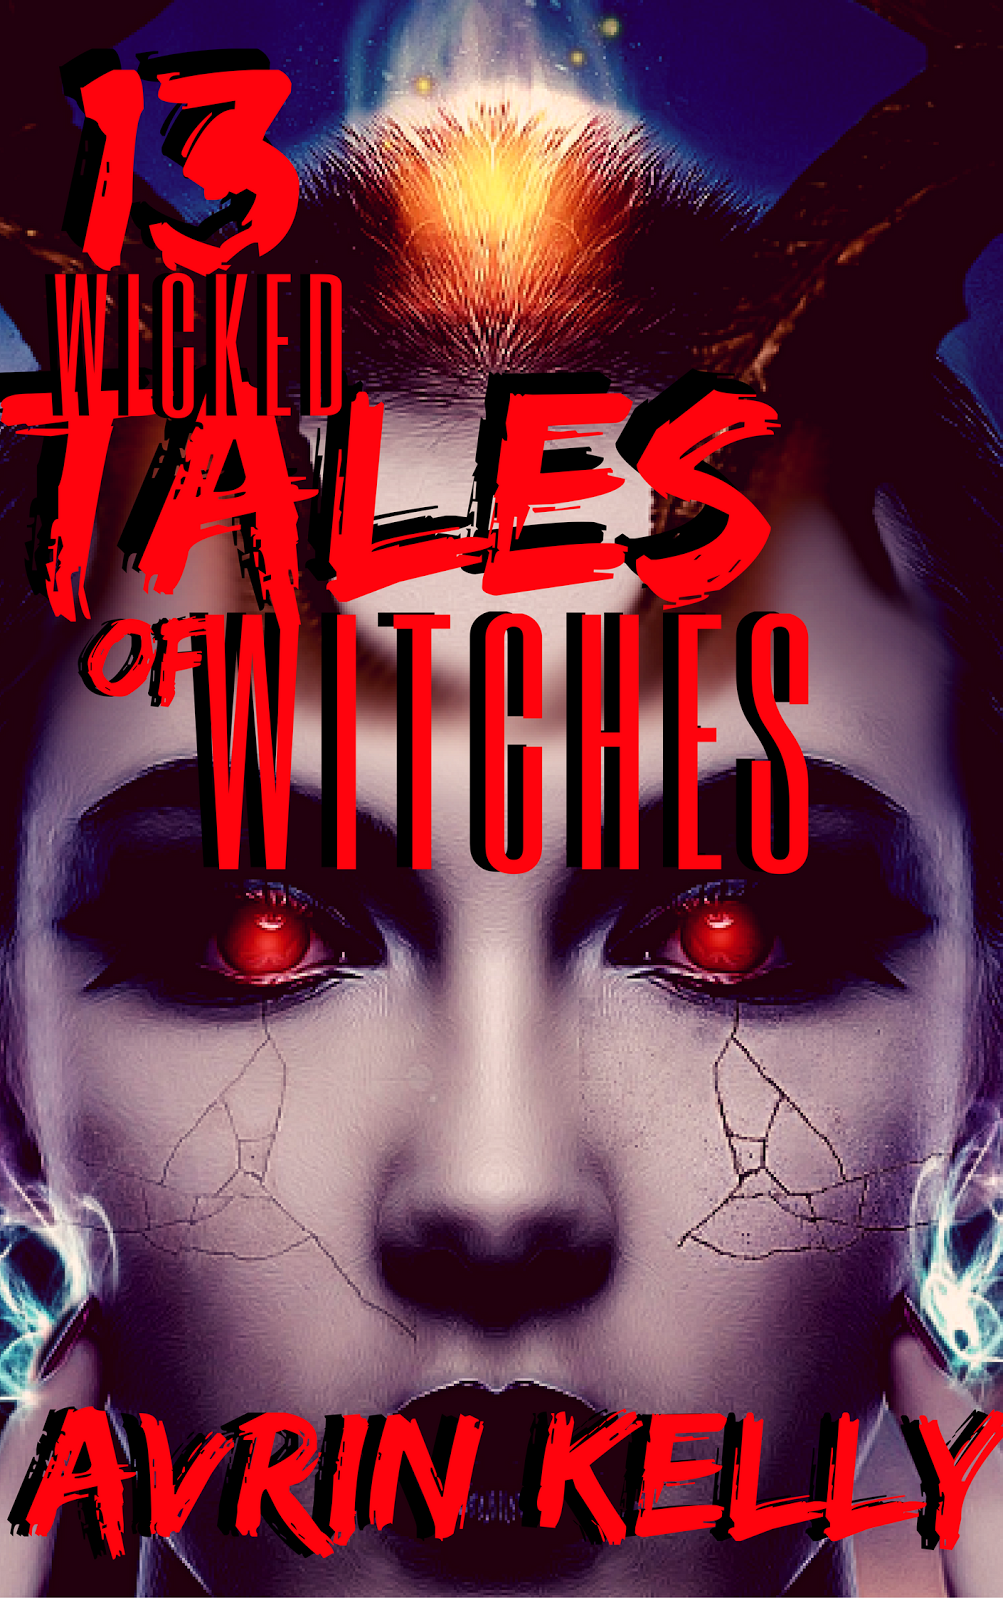 13 Wicked Tales Of Witches